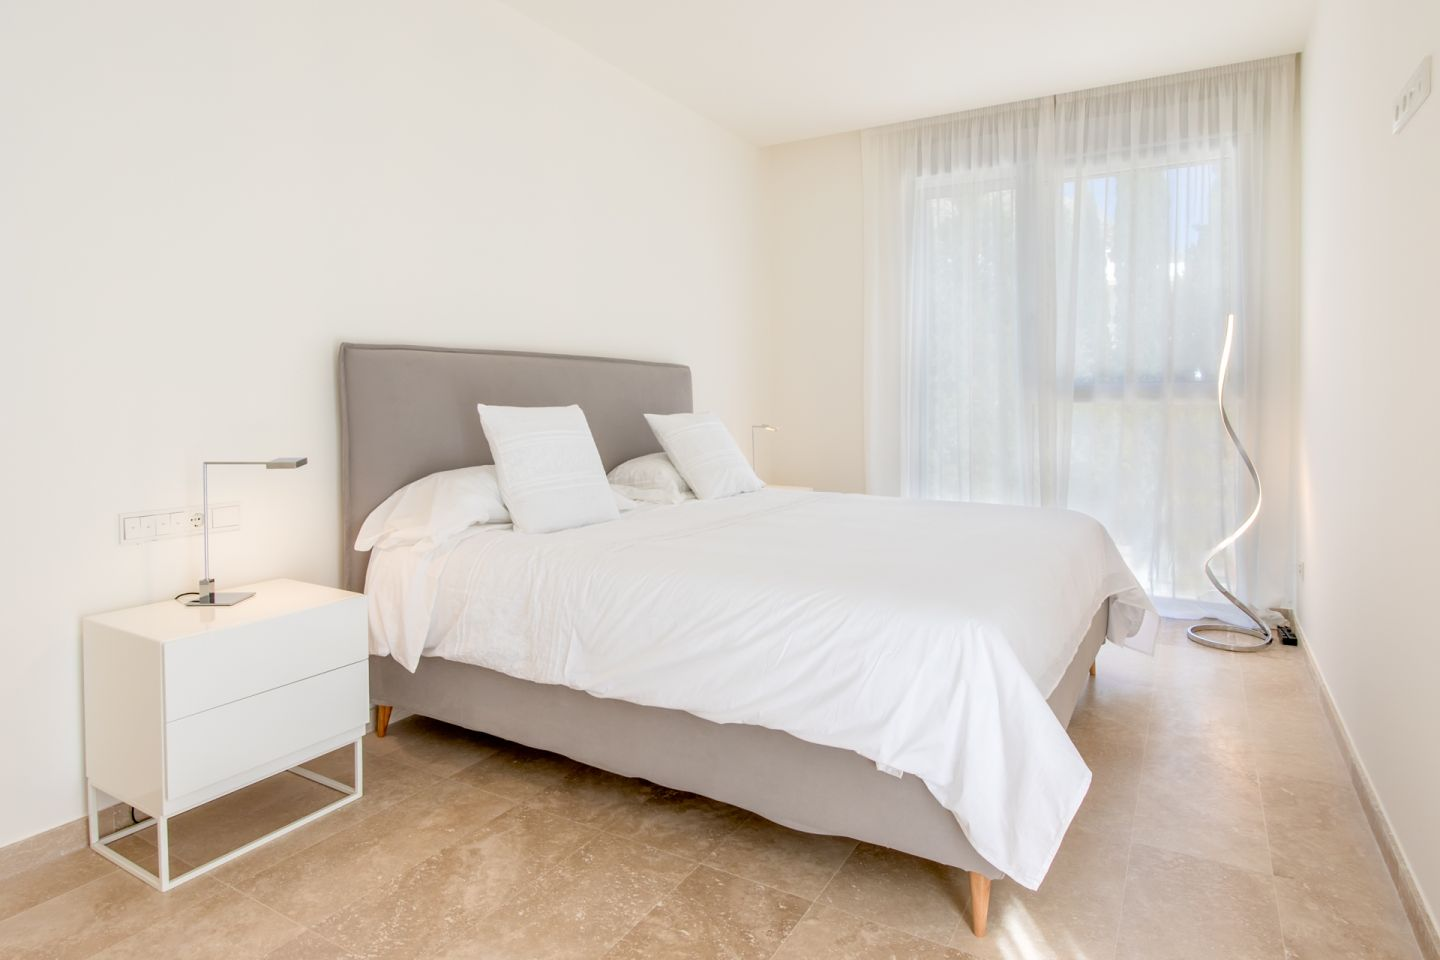 4 Bed Apartment for sale in PUERTO POLLENSA 10